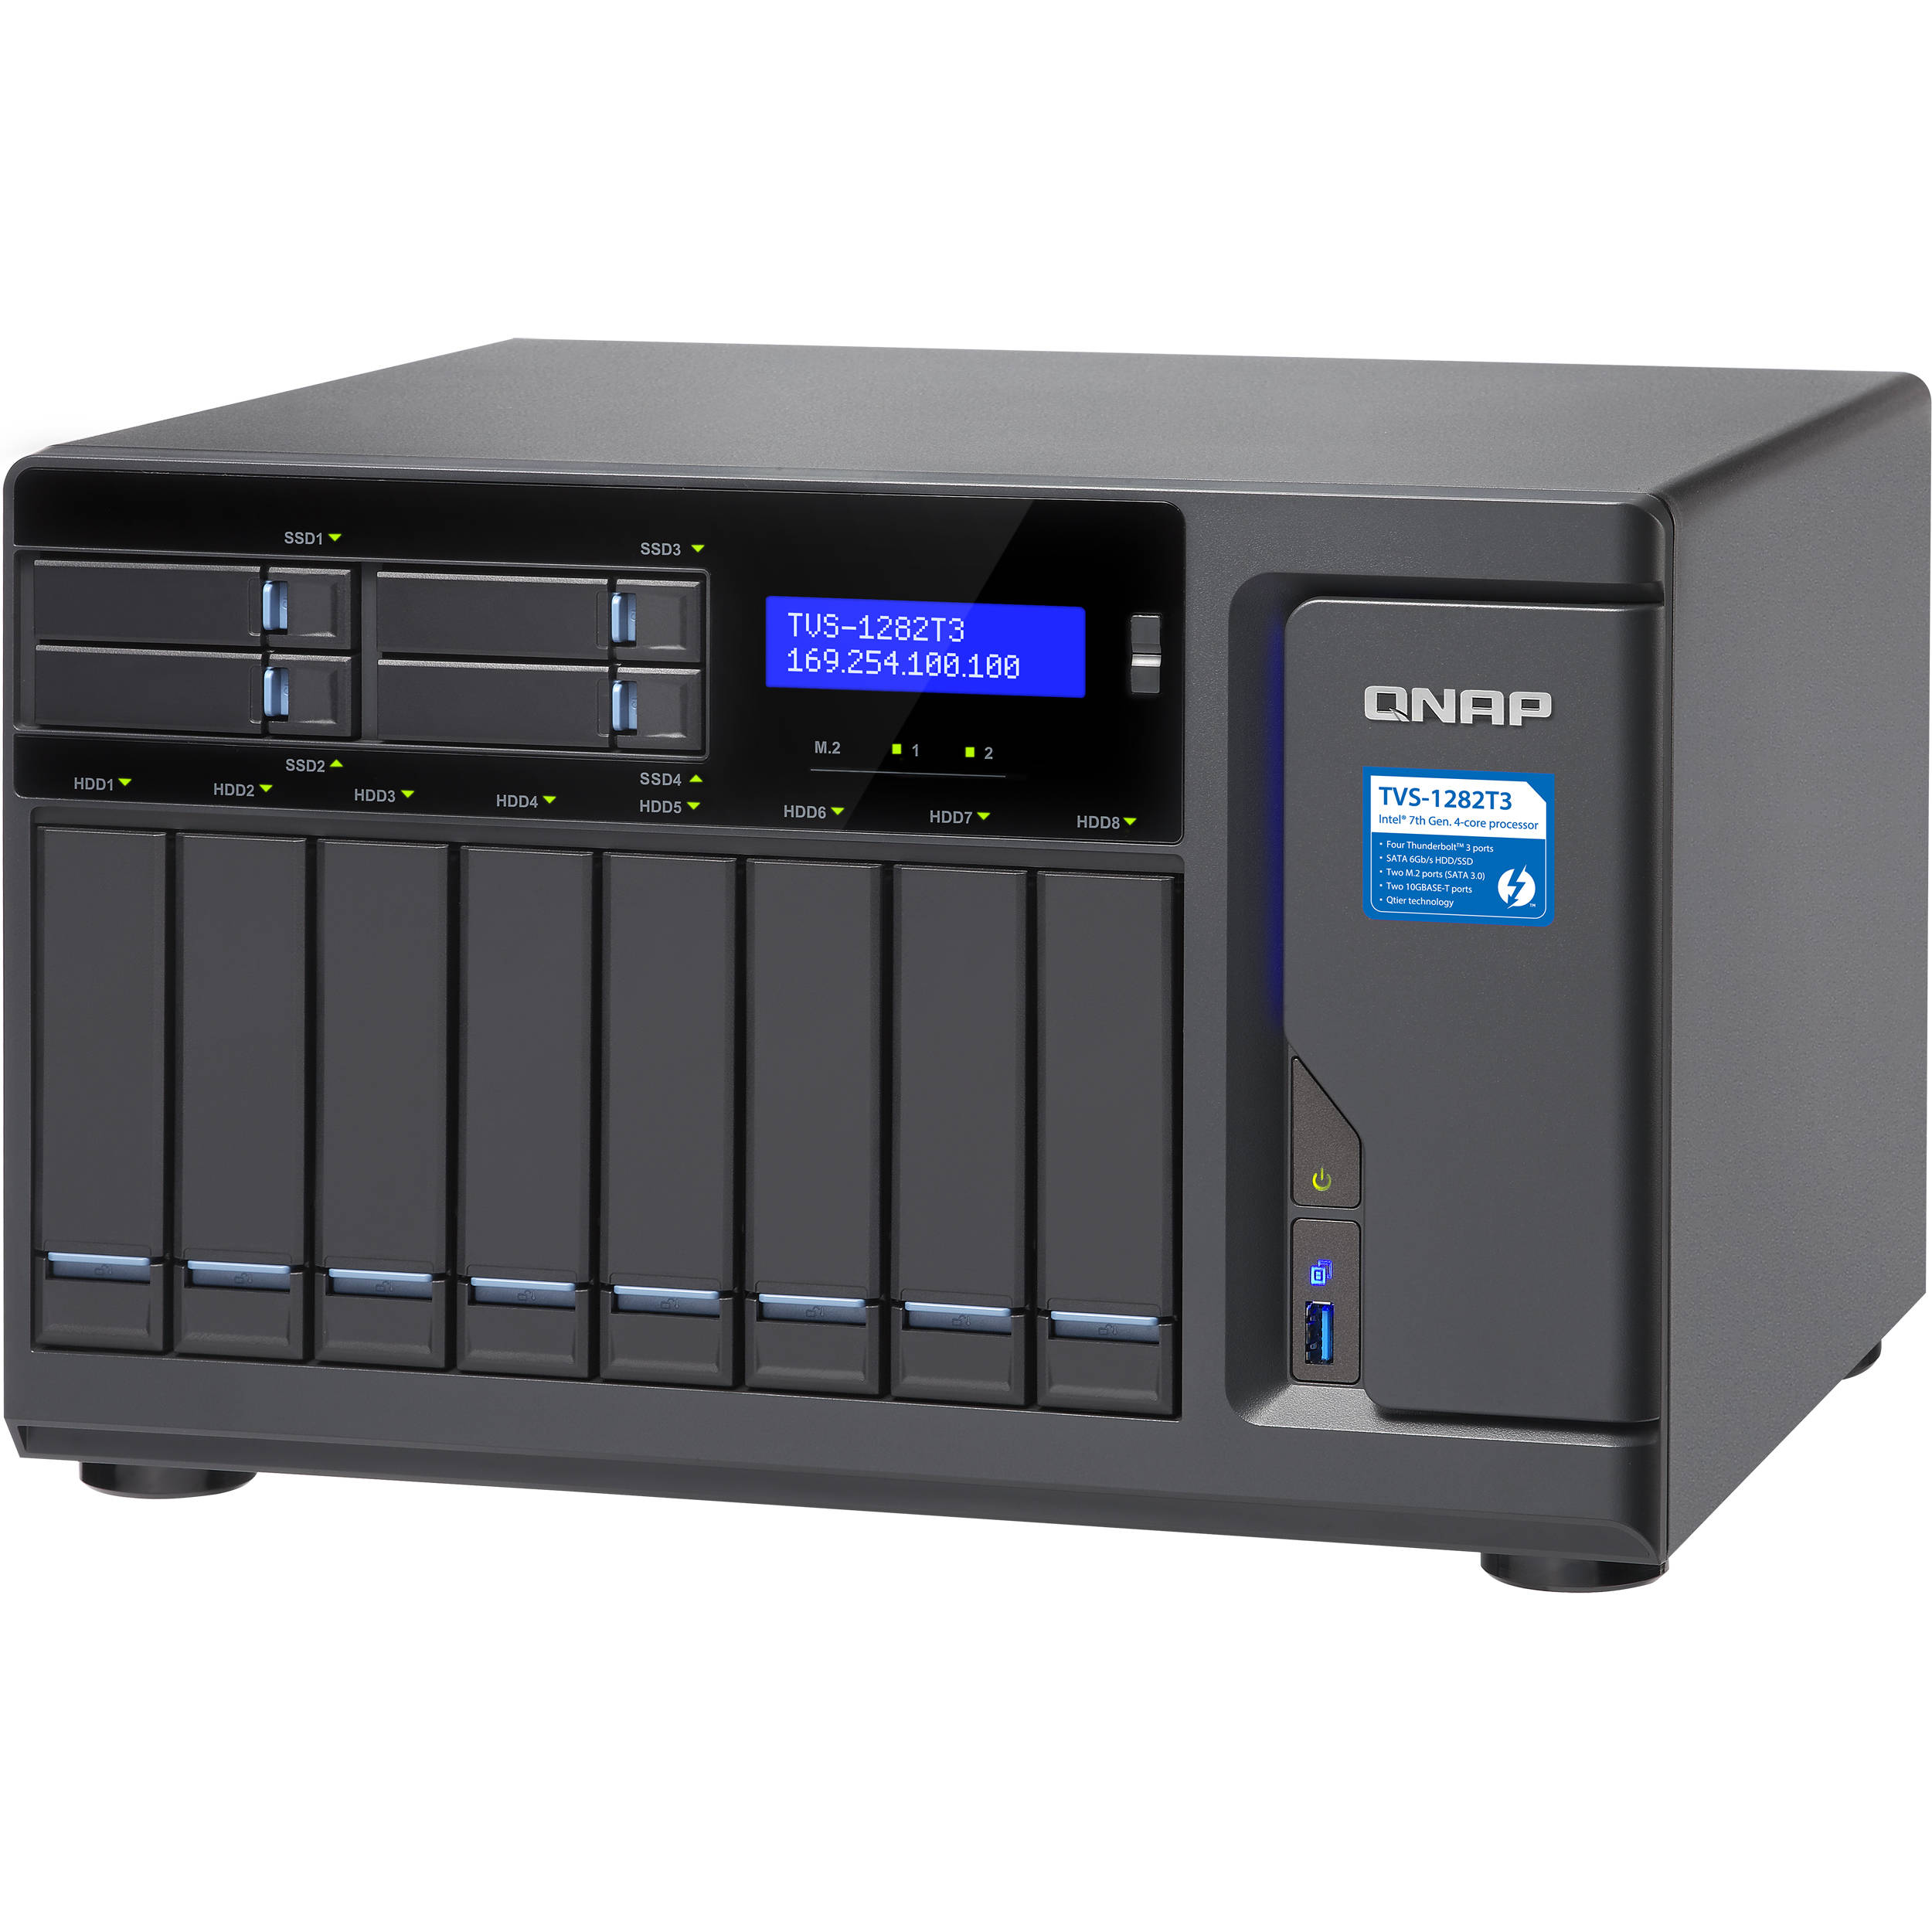 QNAP TVS-1282T3 12-Bay NAS Enclosure